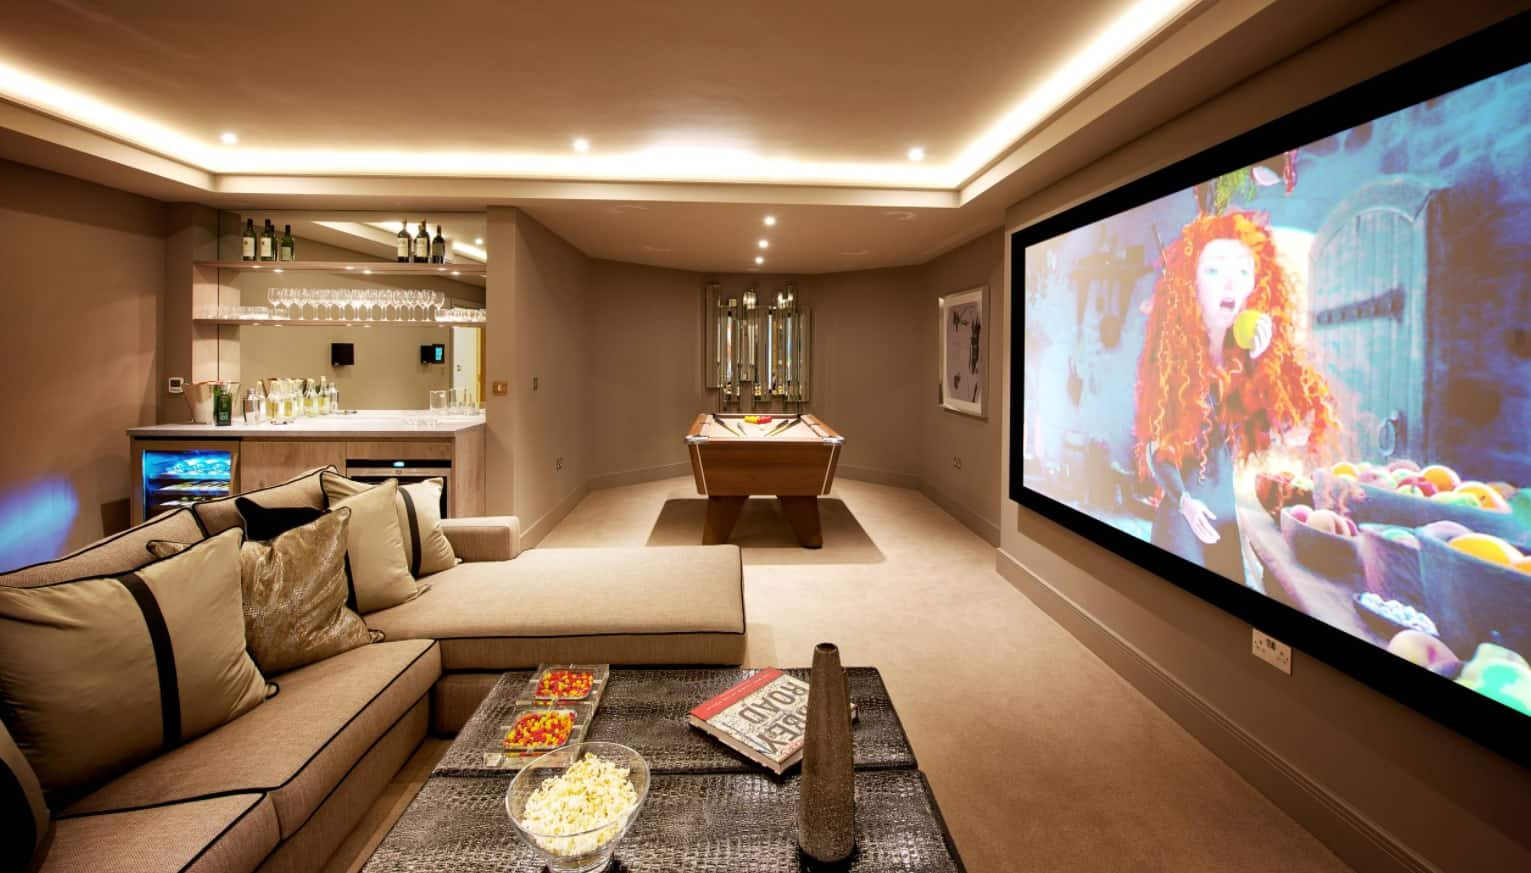 Modern Smart Home Design with Surveillance Cameras. Beige colored leisure room with LED lighting, smart controllers and large TV-set